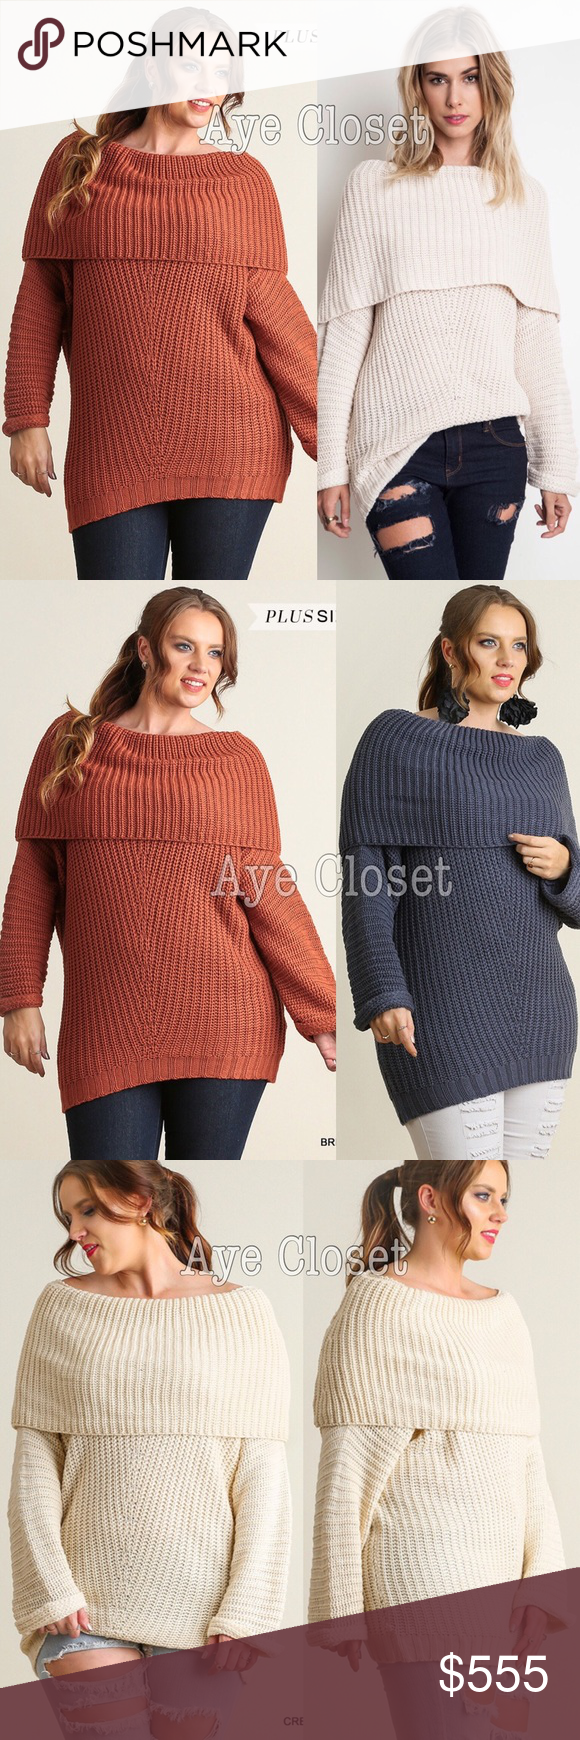 c7c552c047a Plus size Knit chunky sweater tunic top rust sexy This listing Is for Rust Brick  color knit soft chunky ribbed tunic sweater top. fold over neck